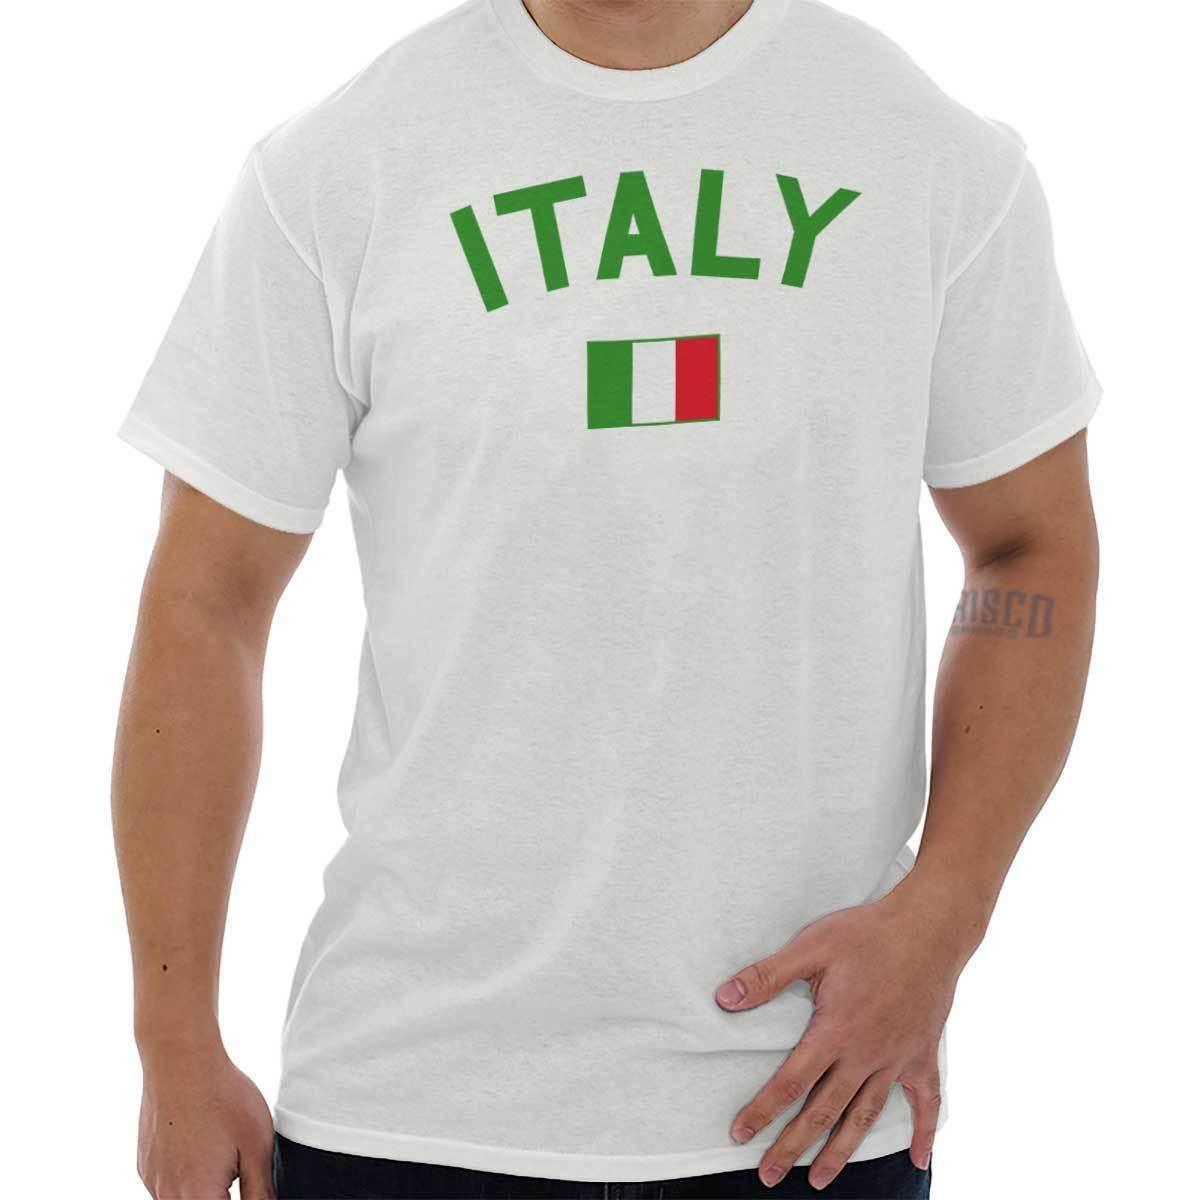 12a6858e Details Zu Italy Flag World Cup Soccer Italian National Flag Pride T Shirt  Tee Funny Unisex Casual Tee Gift Funny T Shirts For Men Make T Shirts From  ...